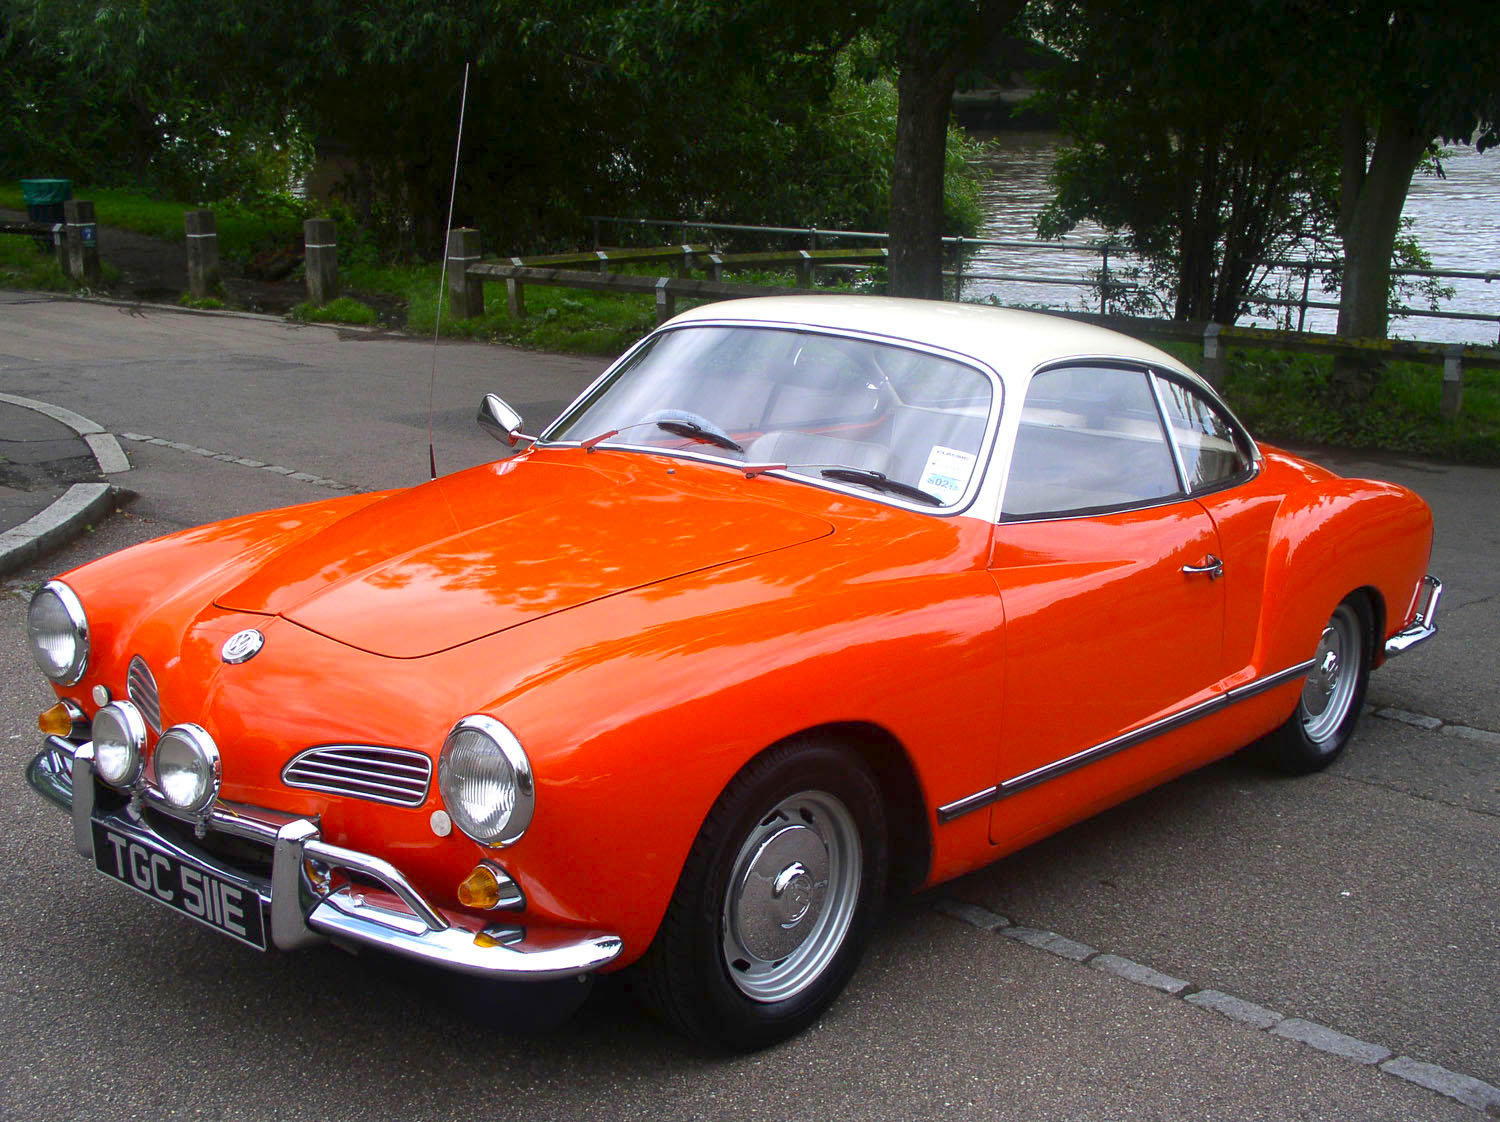 1967 Volkswagen Type 14 Karmann Ghia Coupe - Original RHD For Sale (picture 1 of 6)